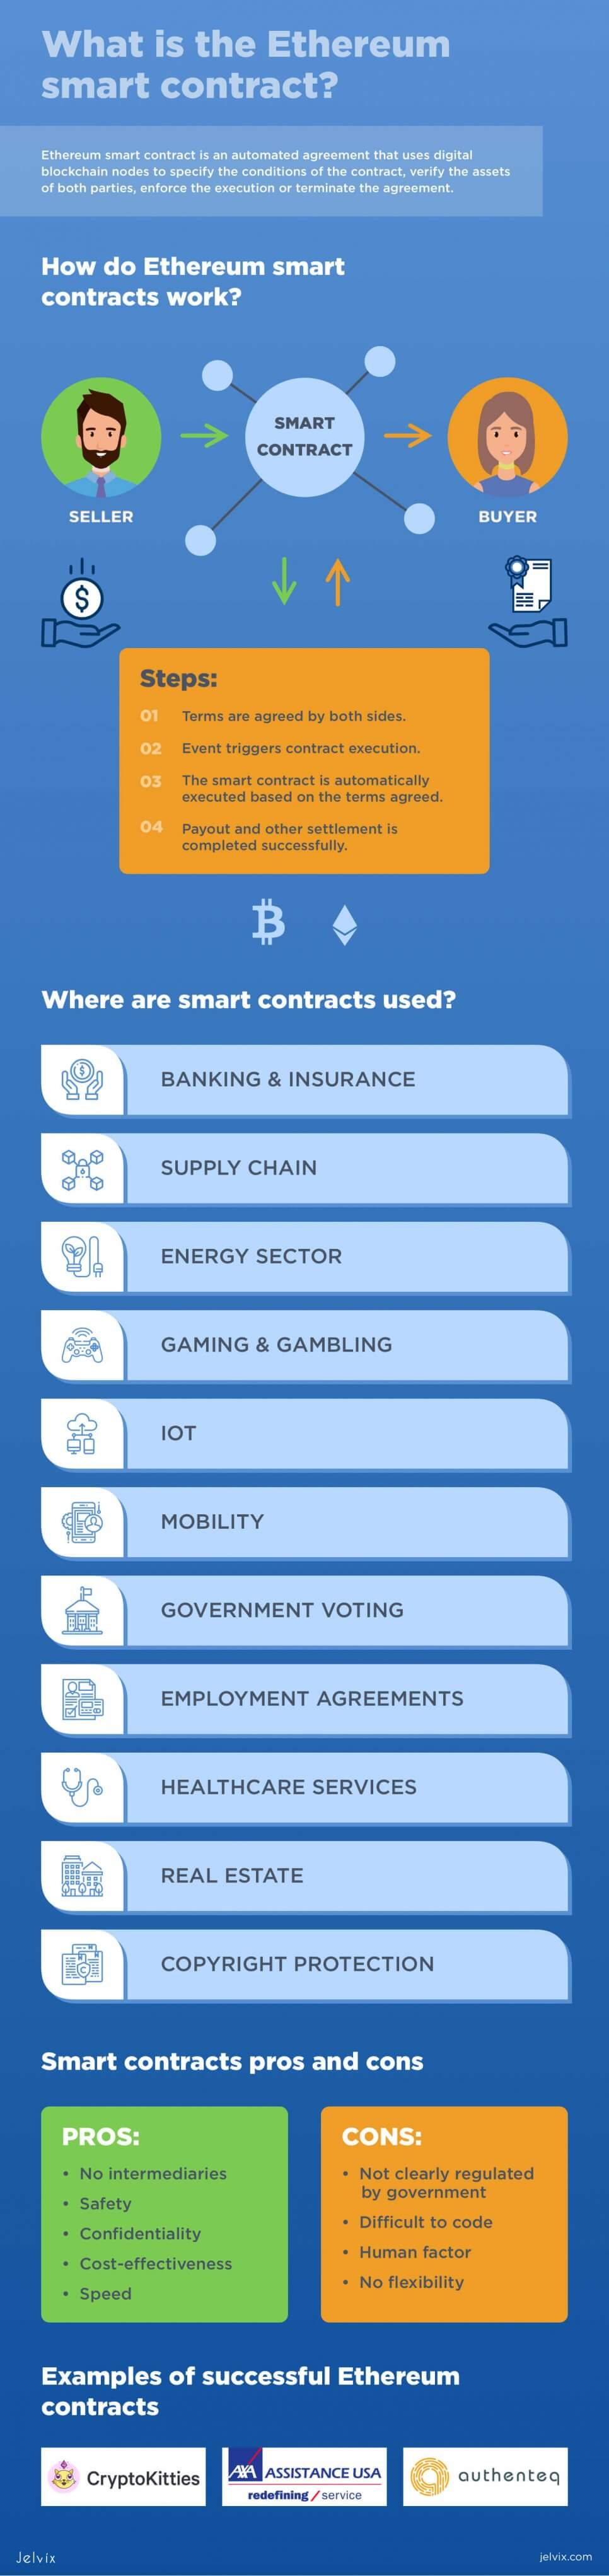 Ethereum smart contracts infographic